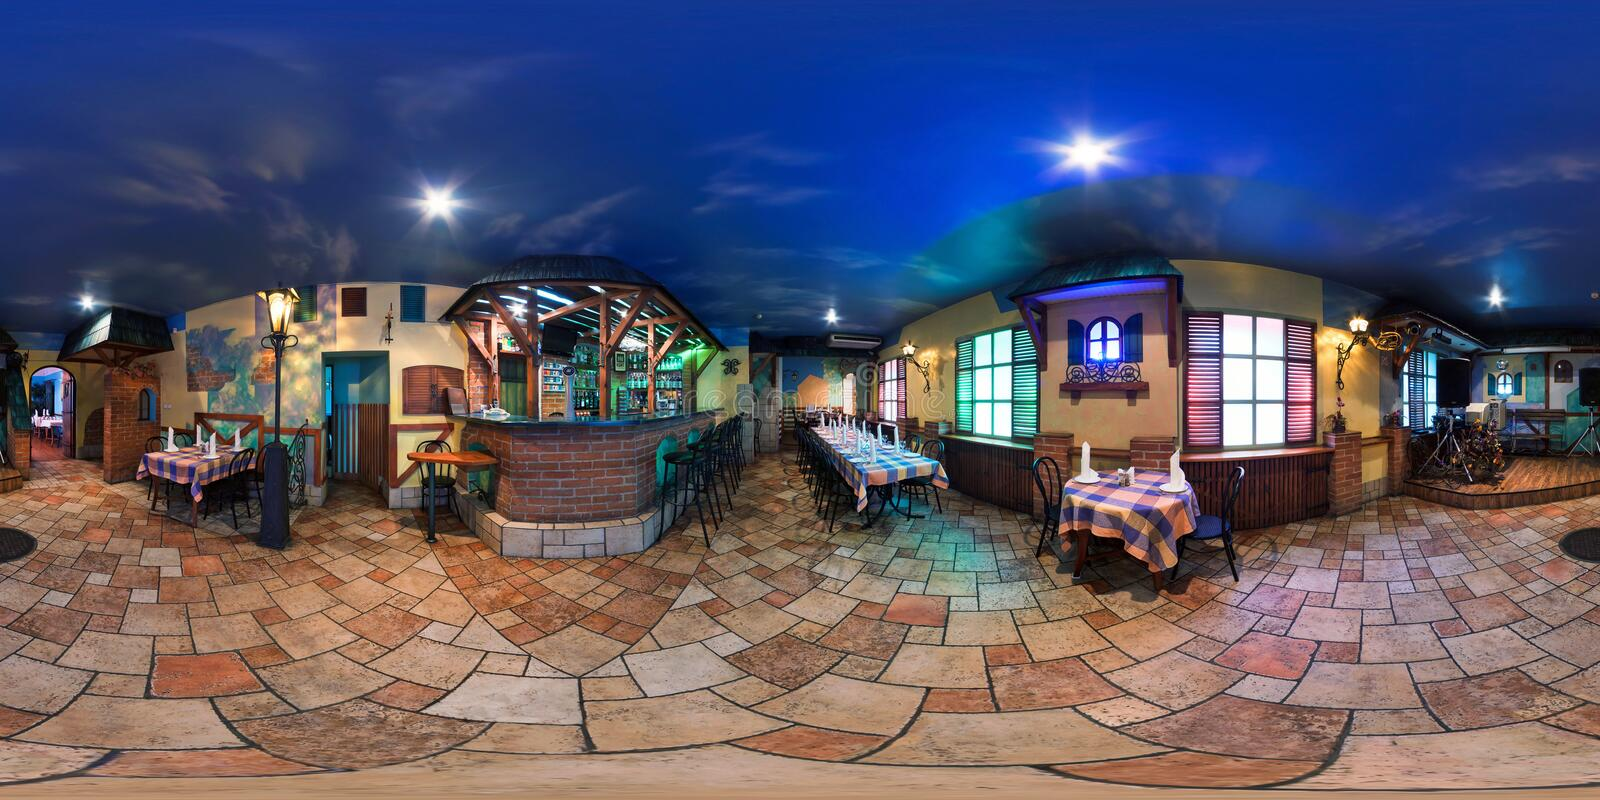 GRODNO, BELARUS - OCTOBER 16, 2011: full 360 degree panorama in equirectangular spherical projection in vintage style cafe, VR. Content royalty free stock photos